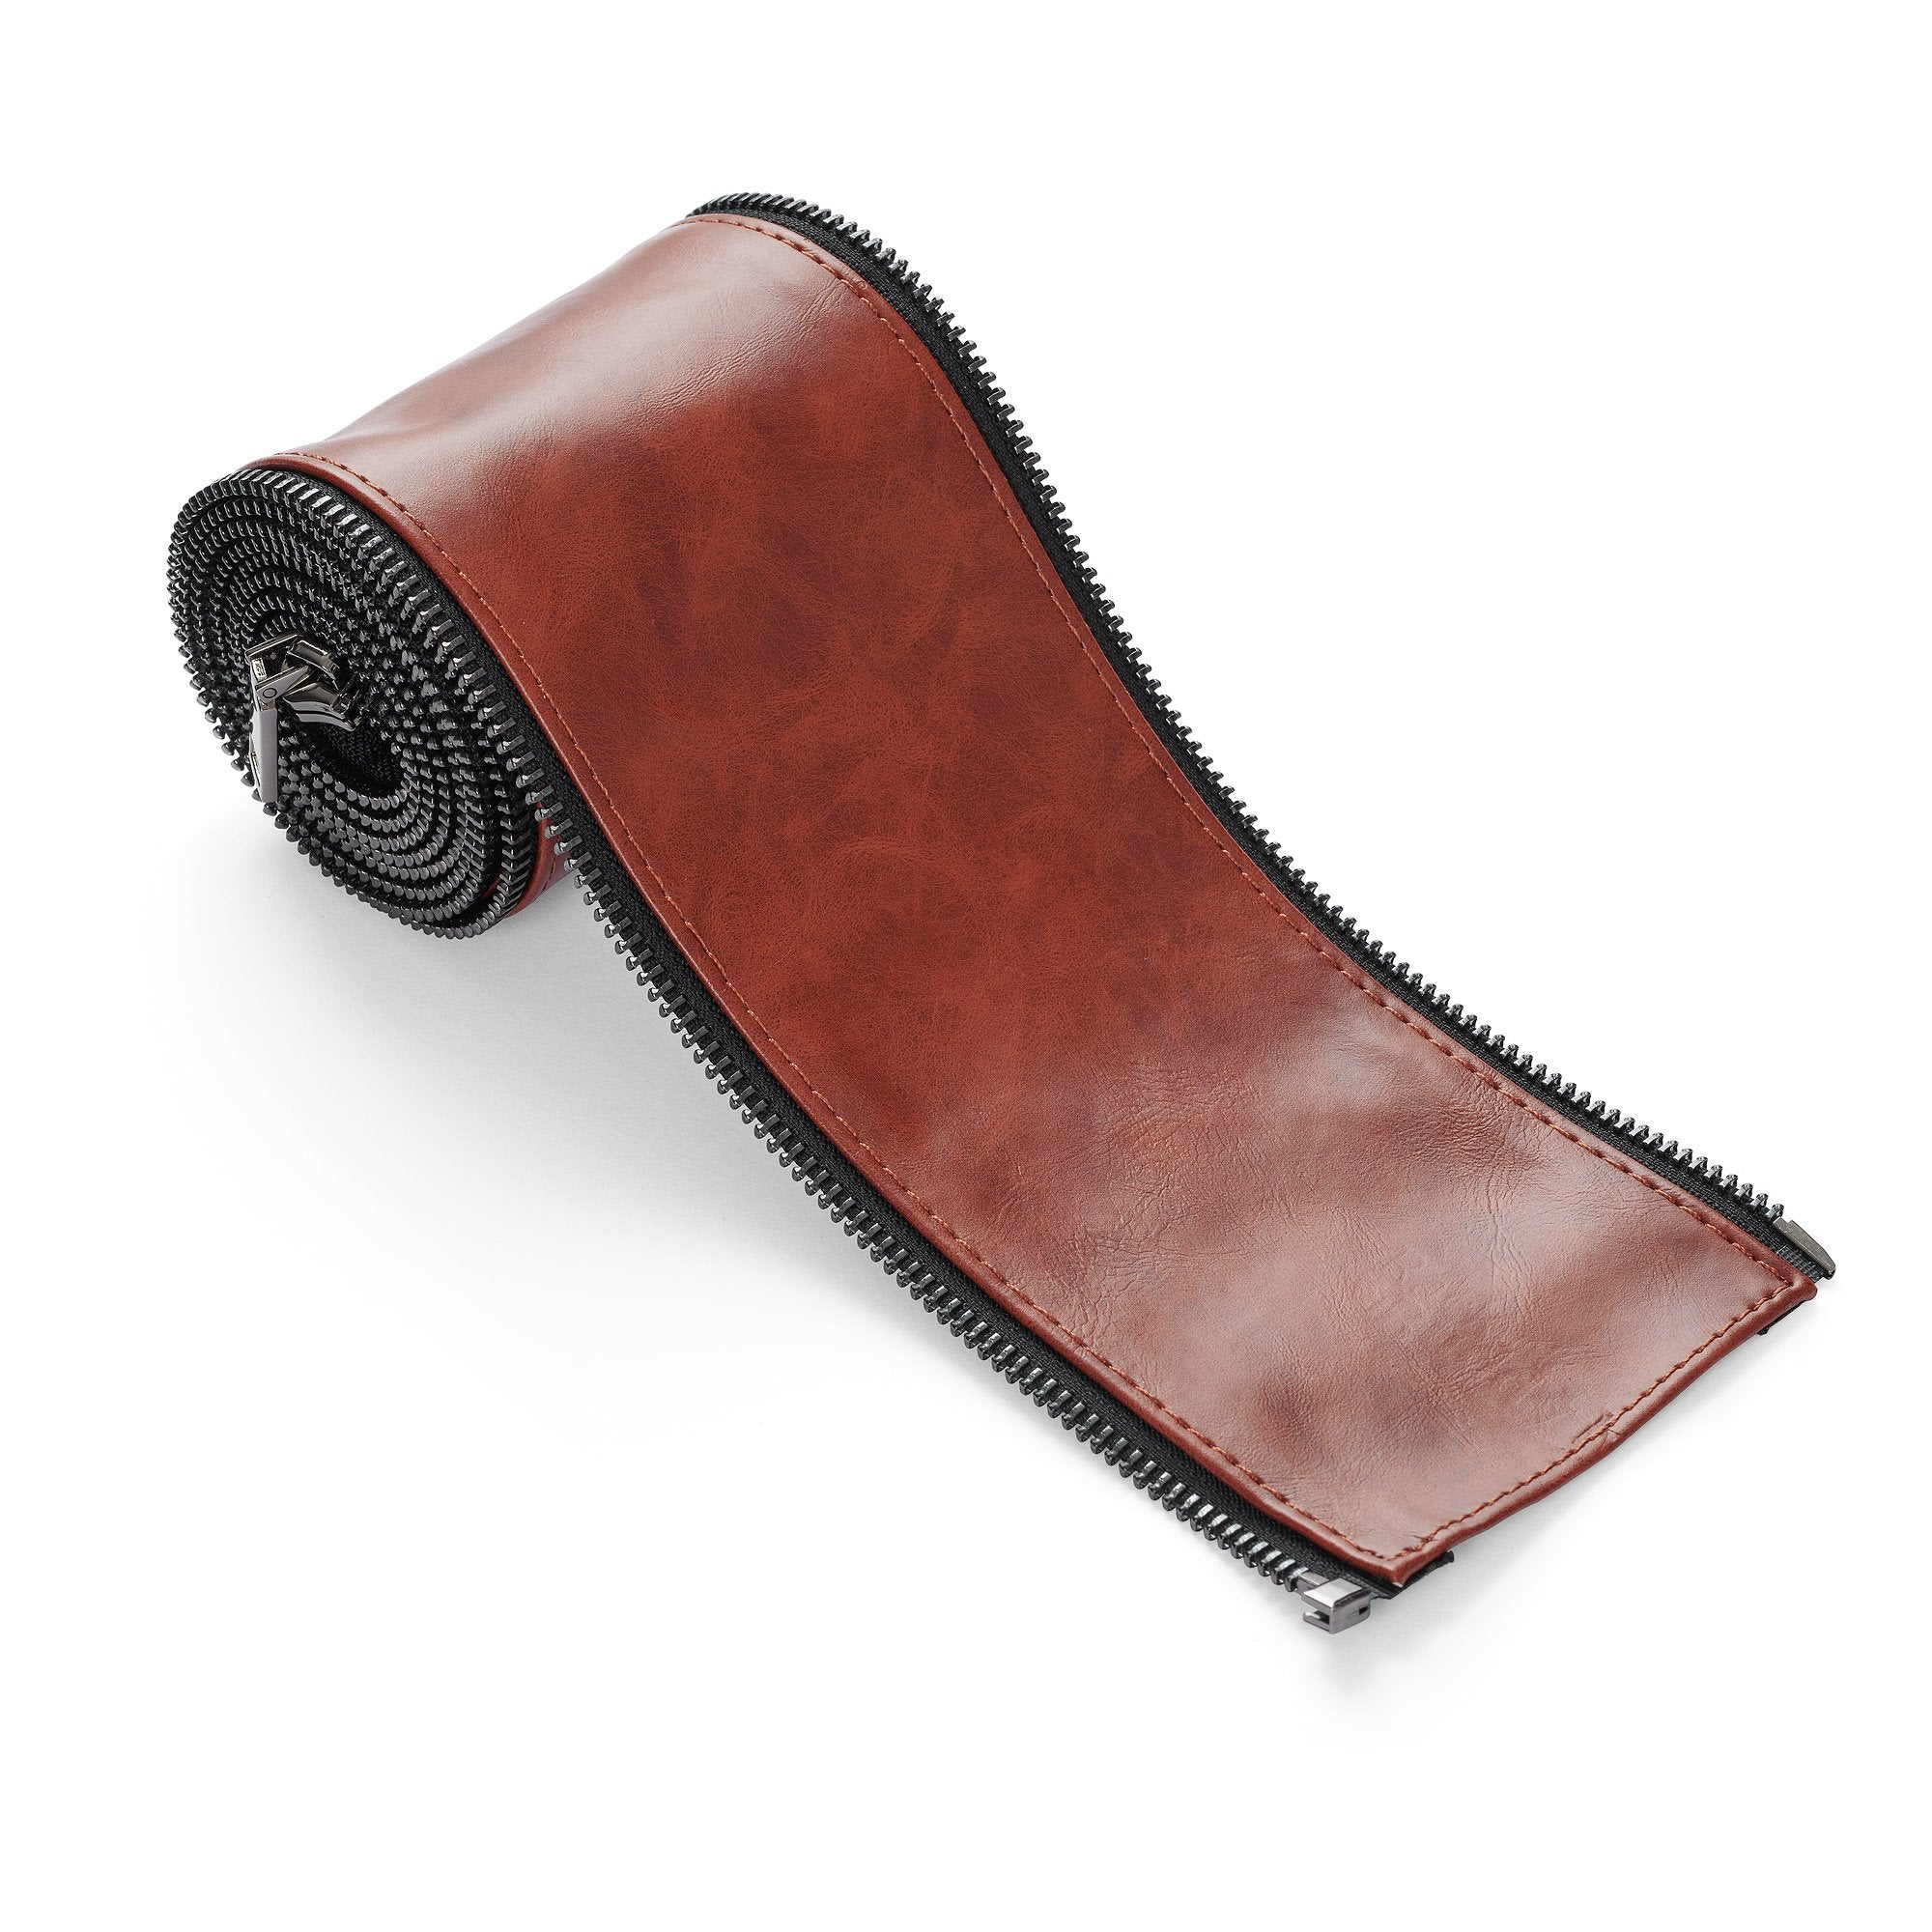 RackBuddy Leatherish - Dark brown sleeve for pipes